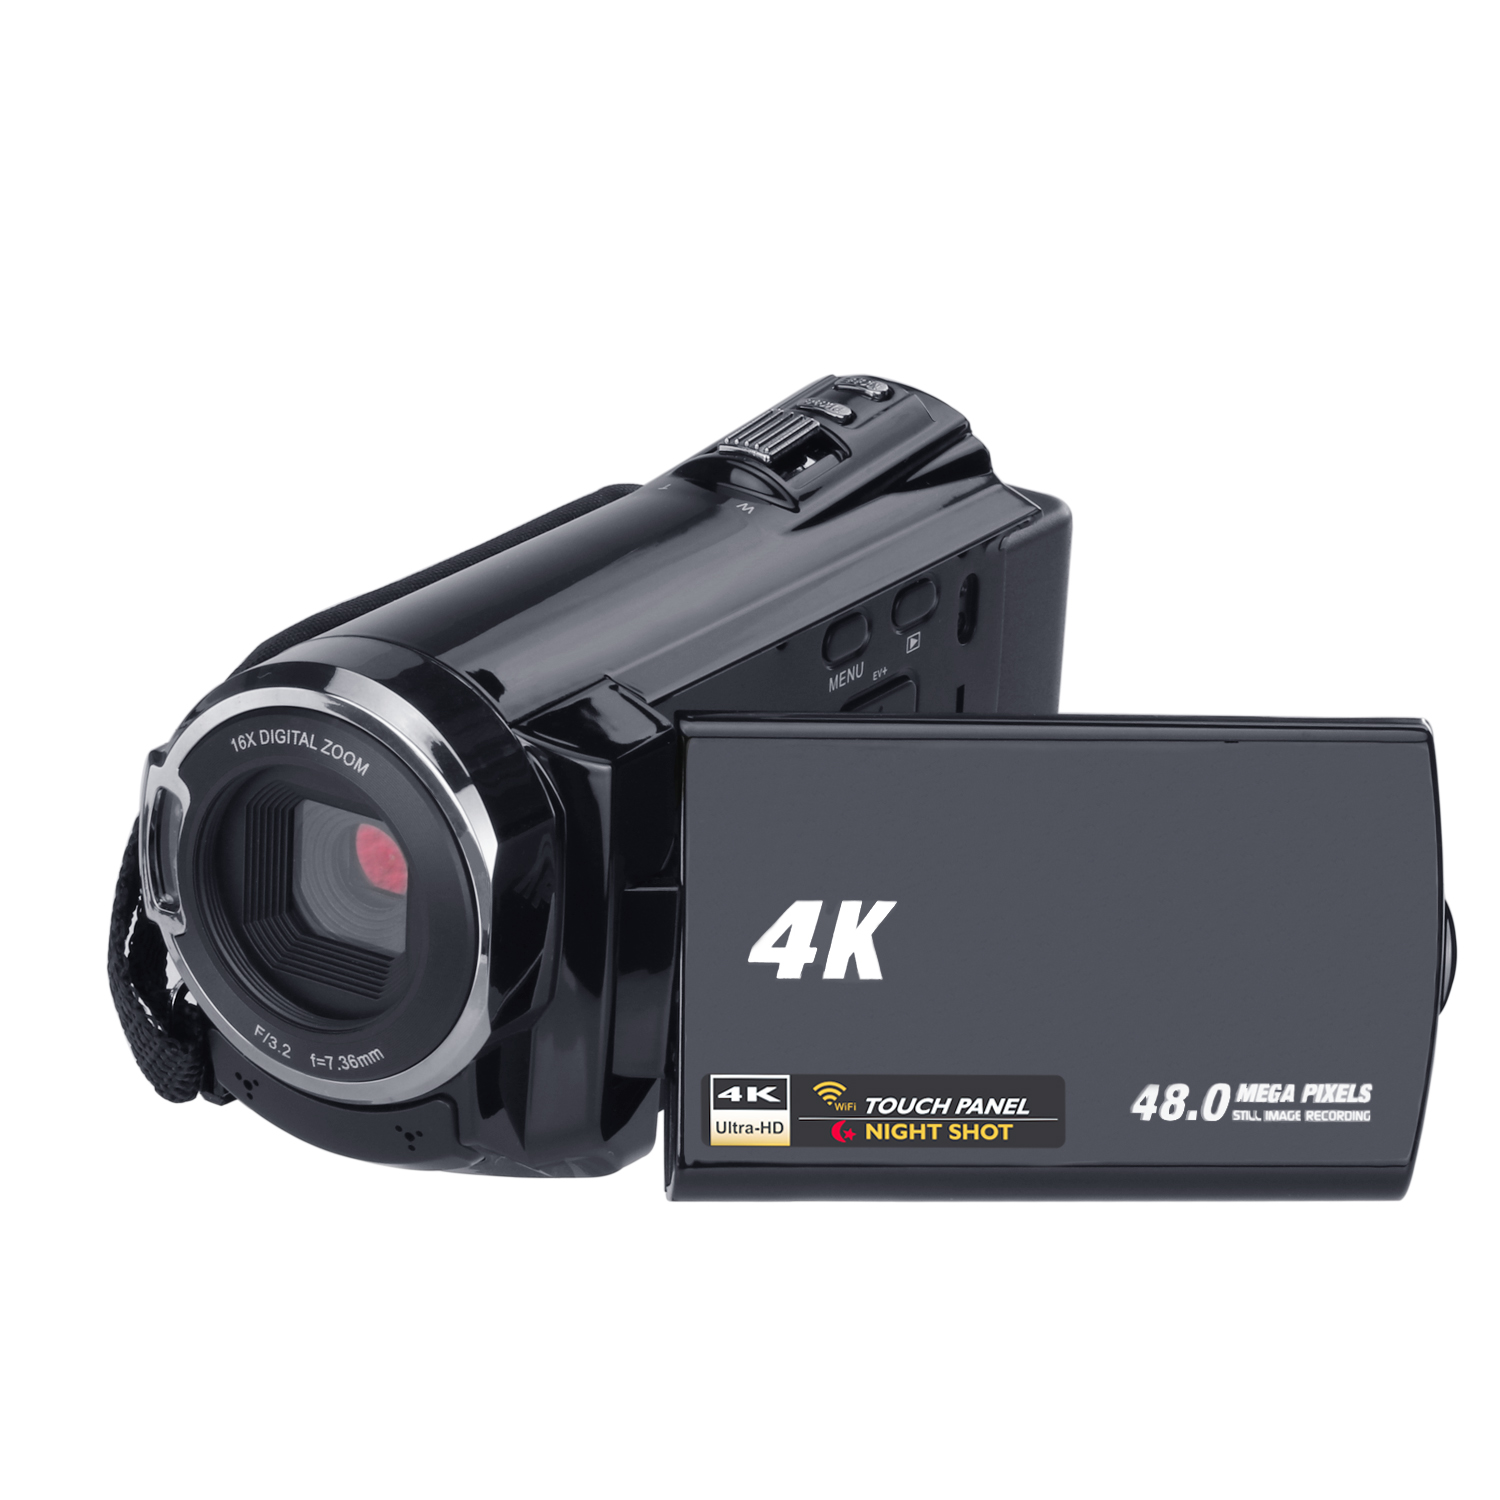 images/wholesale-electronics-2019/4-K-digital-camera-1-4-inch-CMOS-16x-digital-zoom-4-K-video-24-MP-images-3-inch-display-application-128-GB-SD-card-suppo-plusbuyer_5.jpg